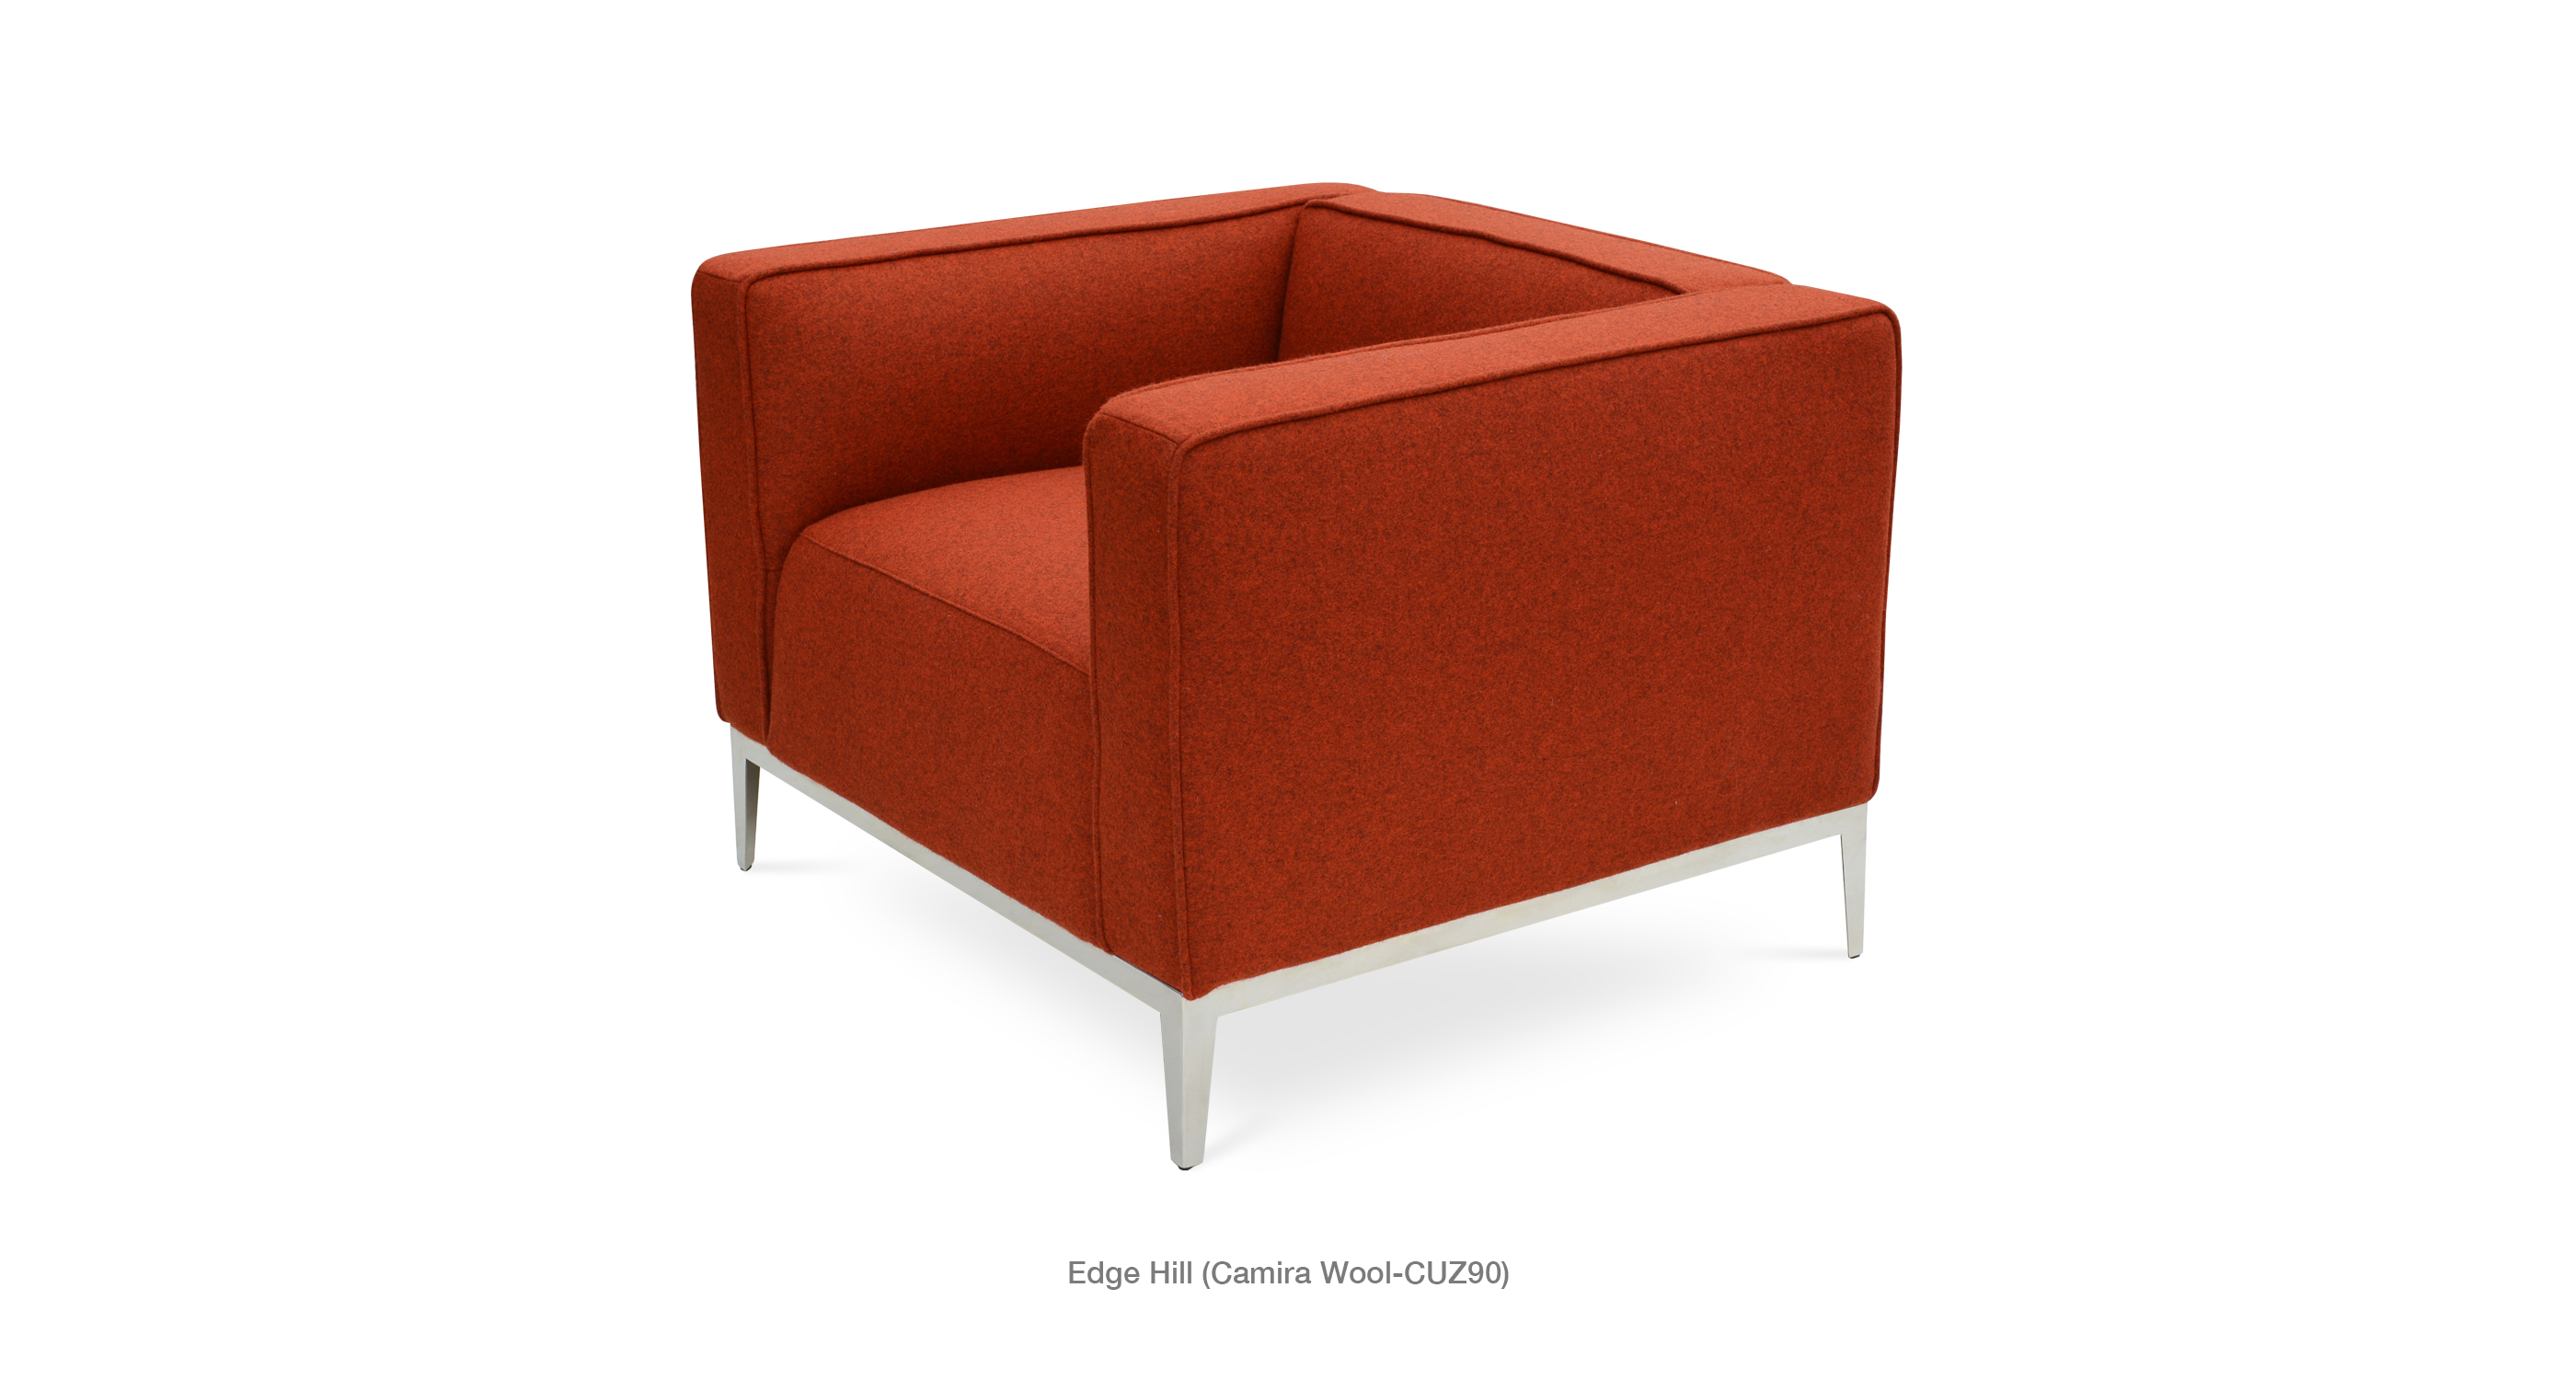 Camira Arm Edge hiil Camira Wool